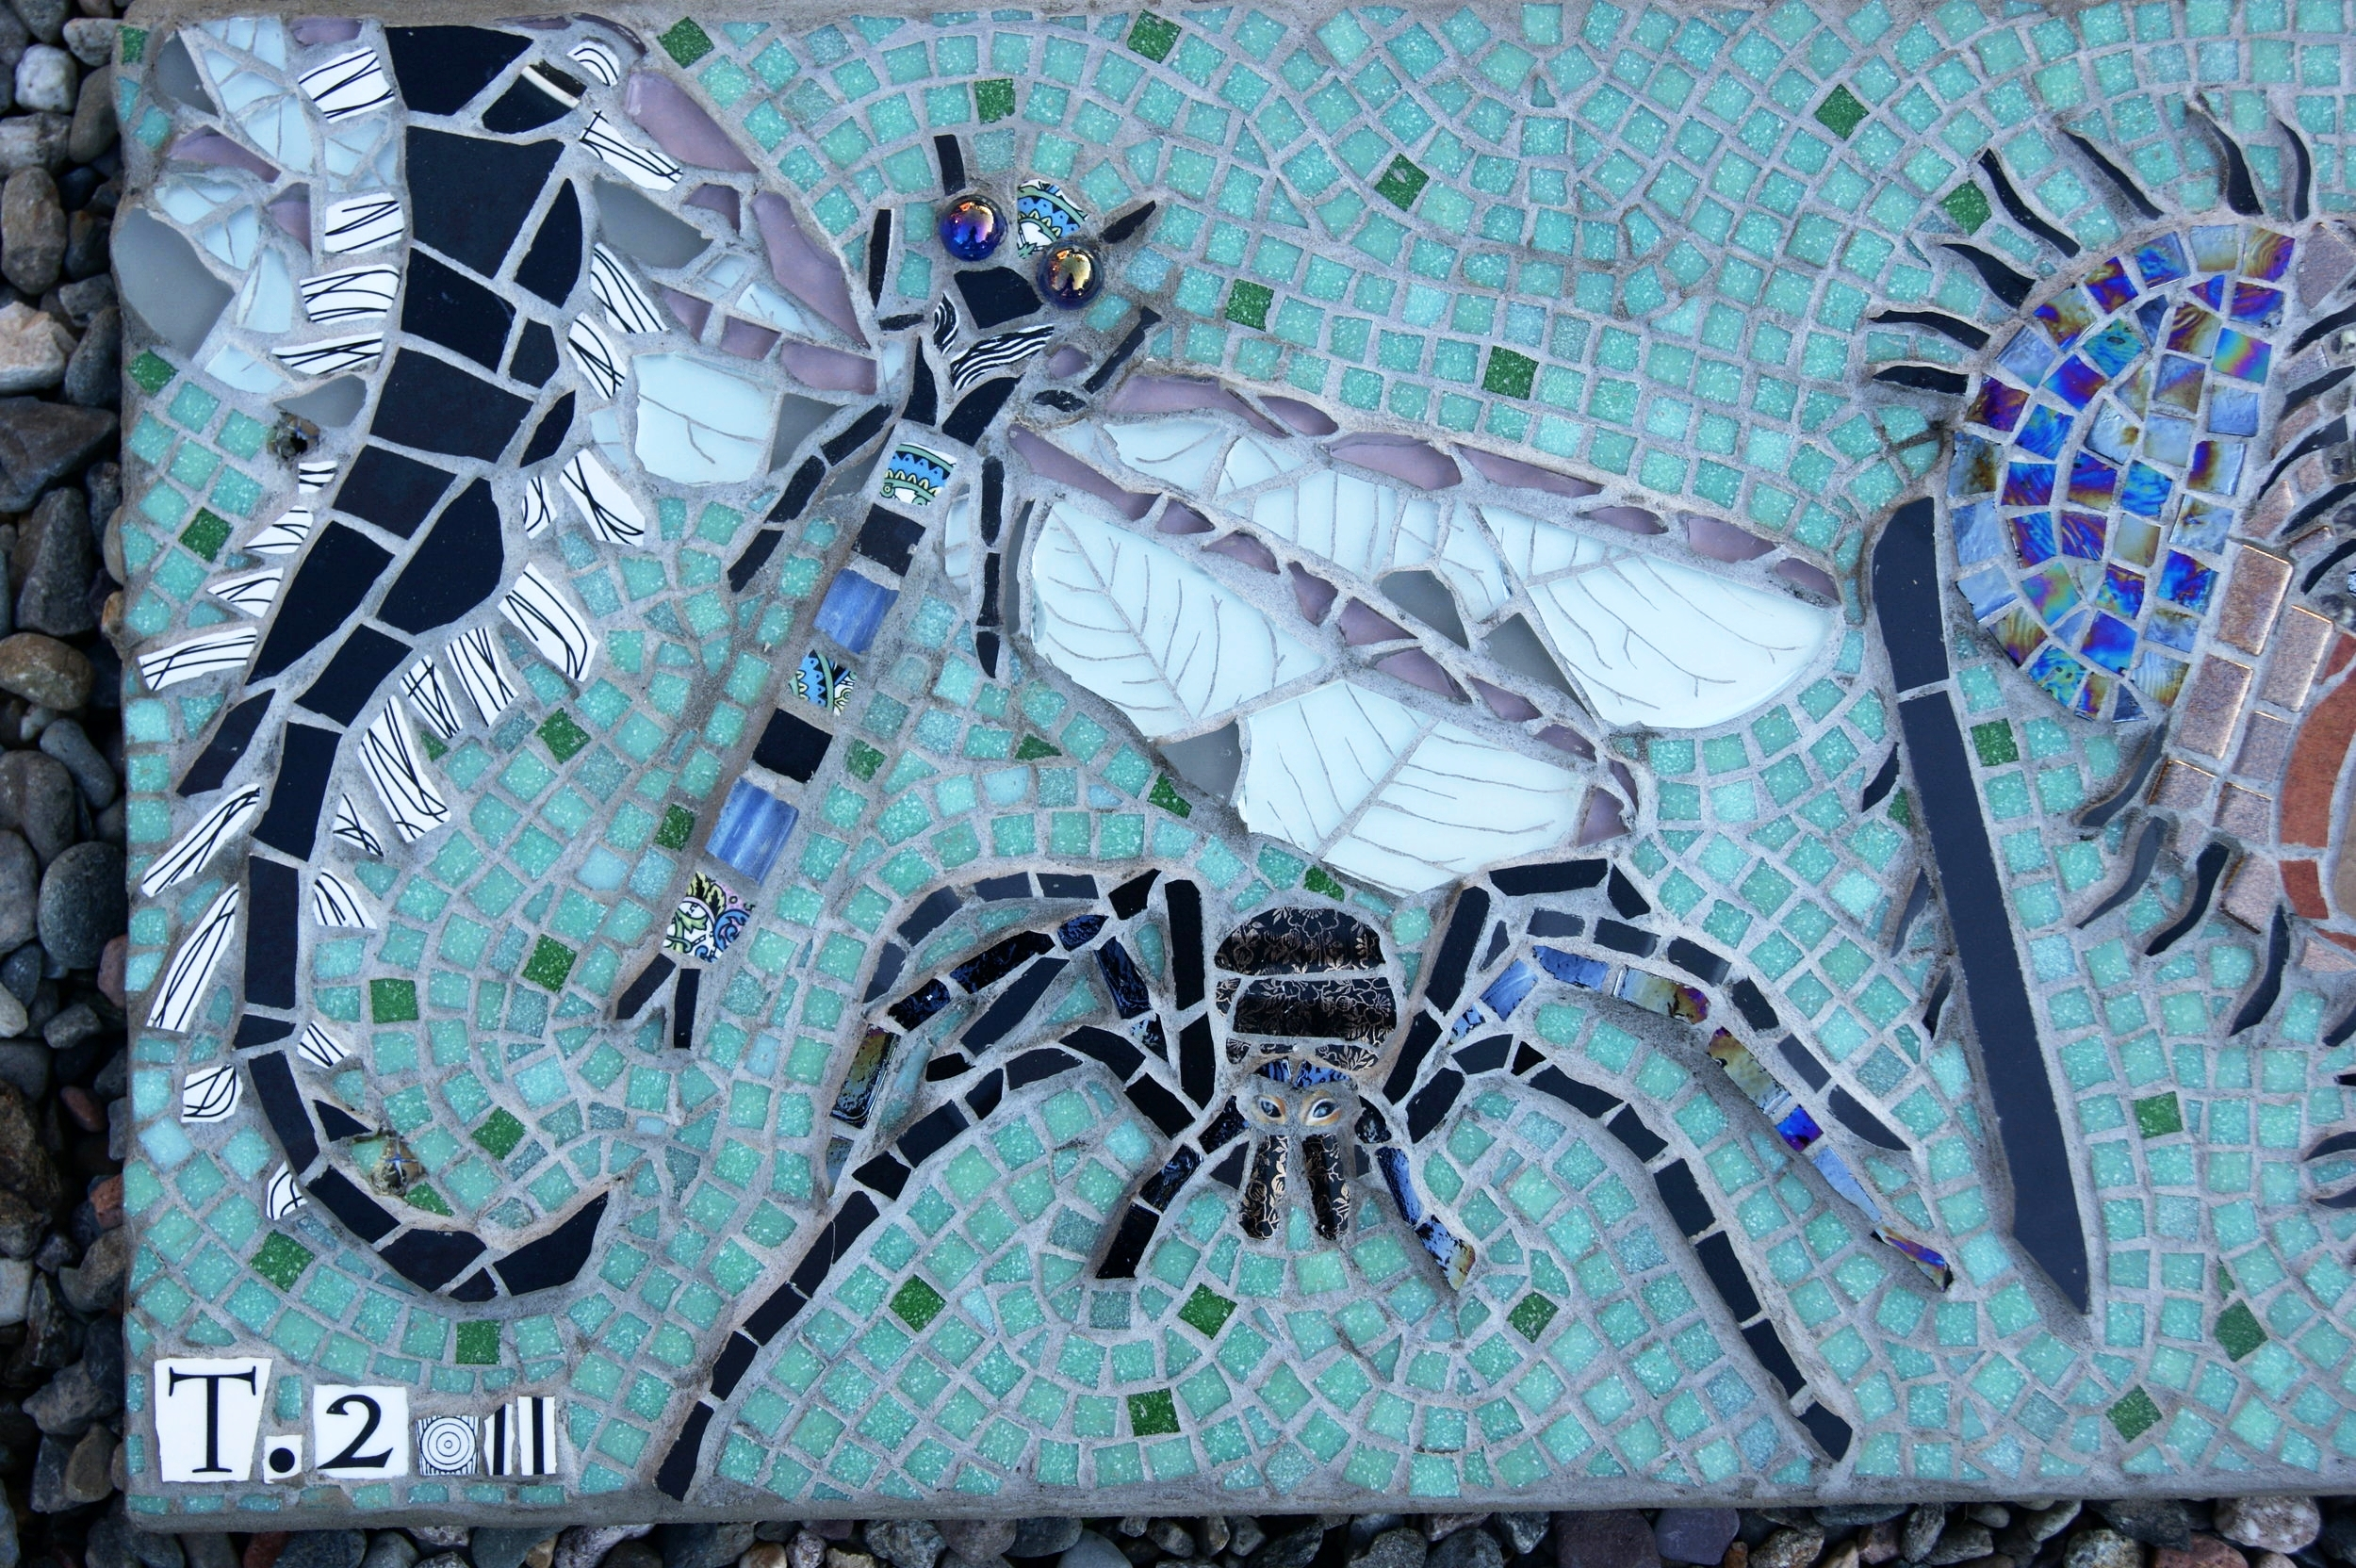 """Section of the """"Biodiversity"""" mosaic at Wyre Forest, Bewdley.  Insects.  Recycled ceramic tile and crockery, vitreous glass, glass beads."""